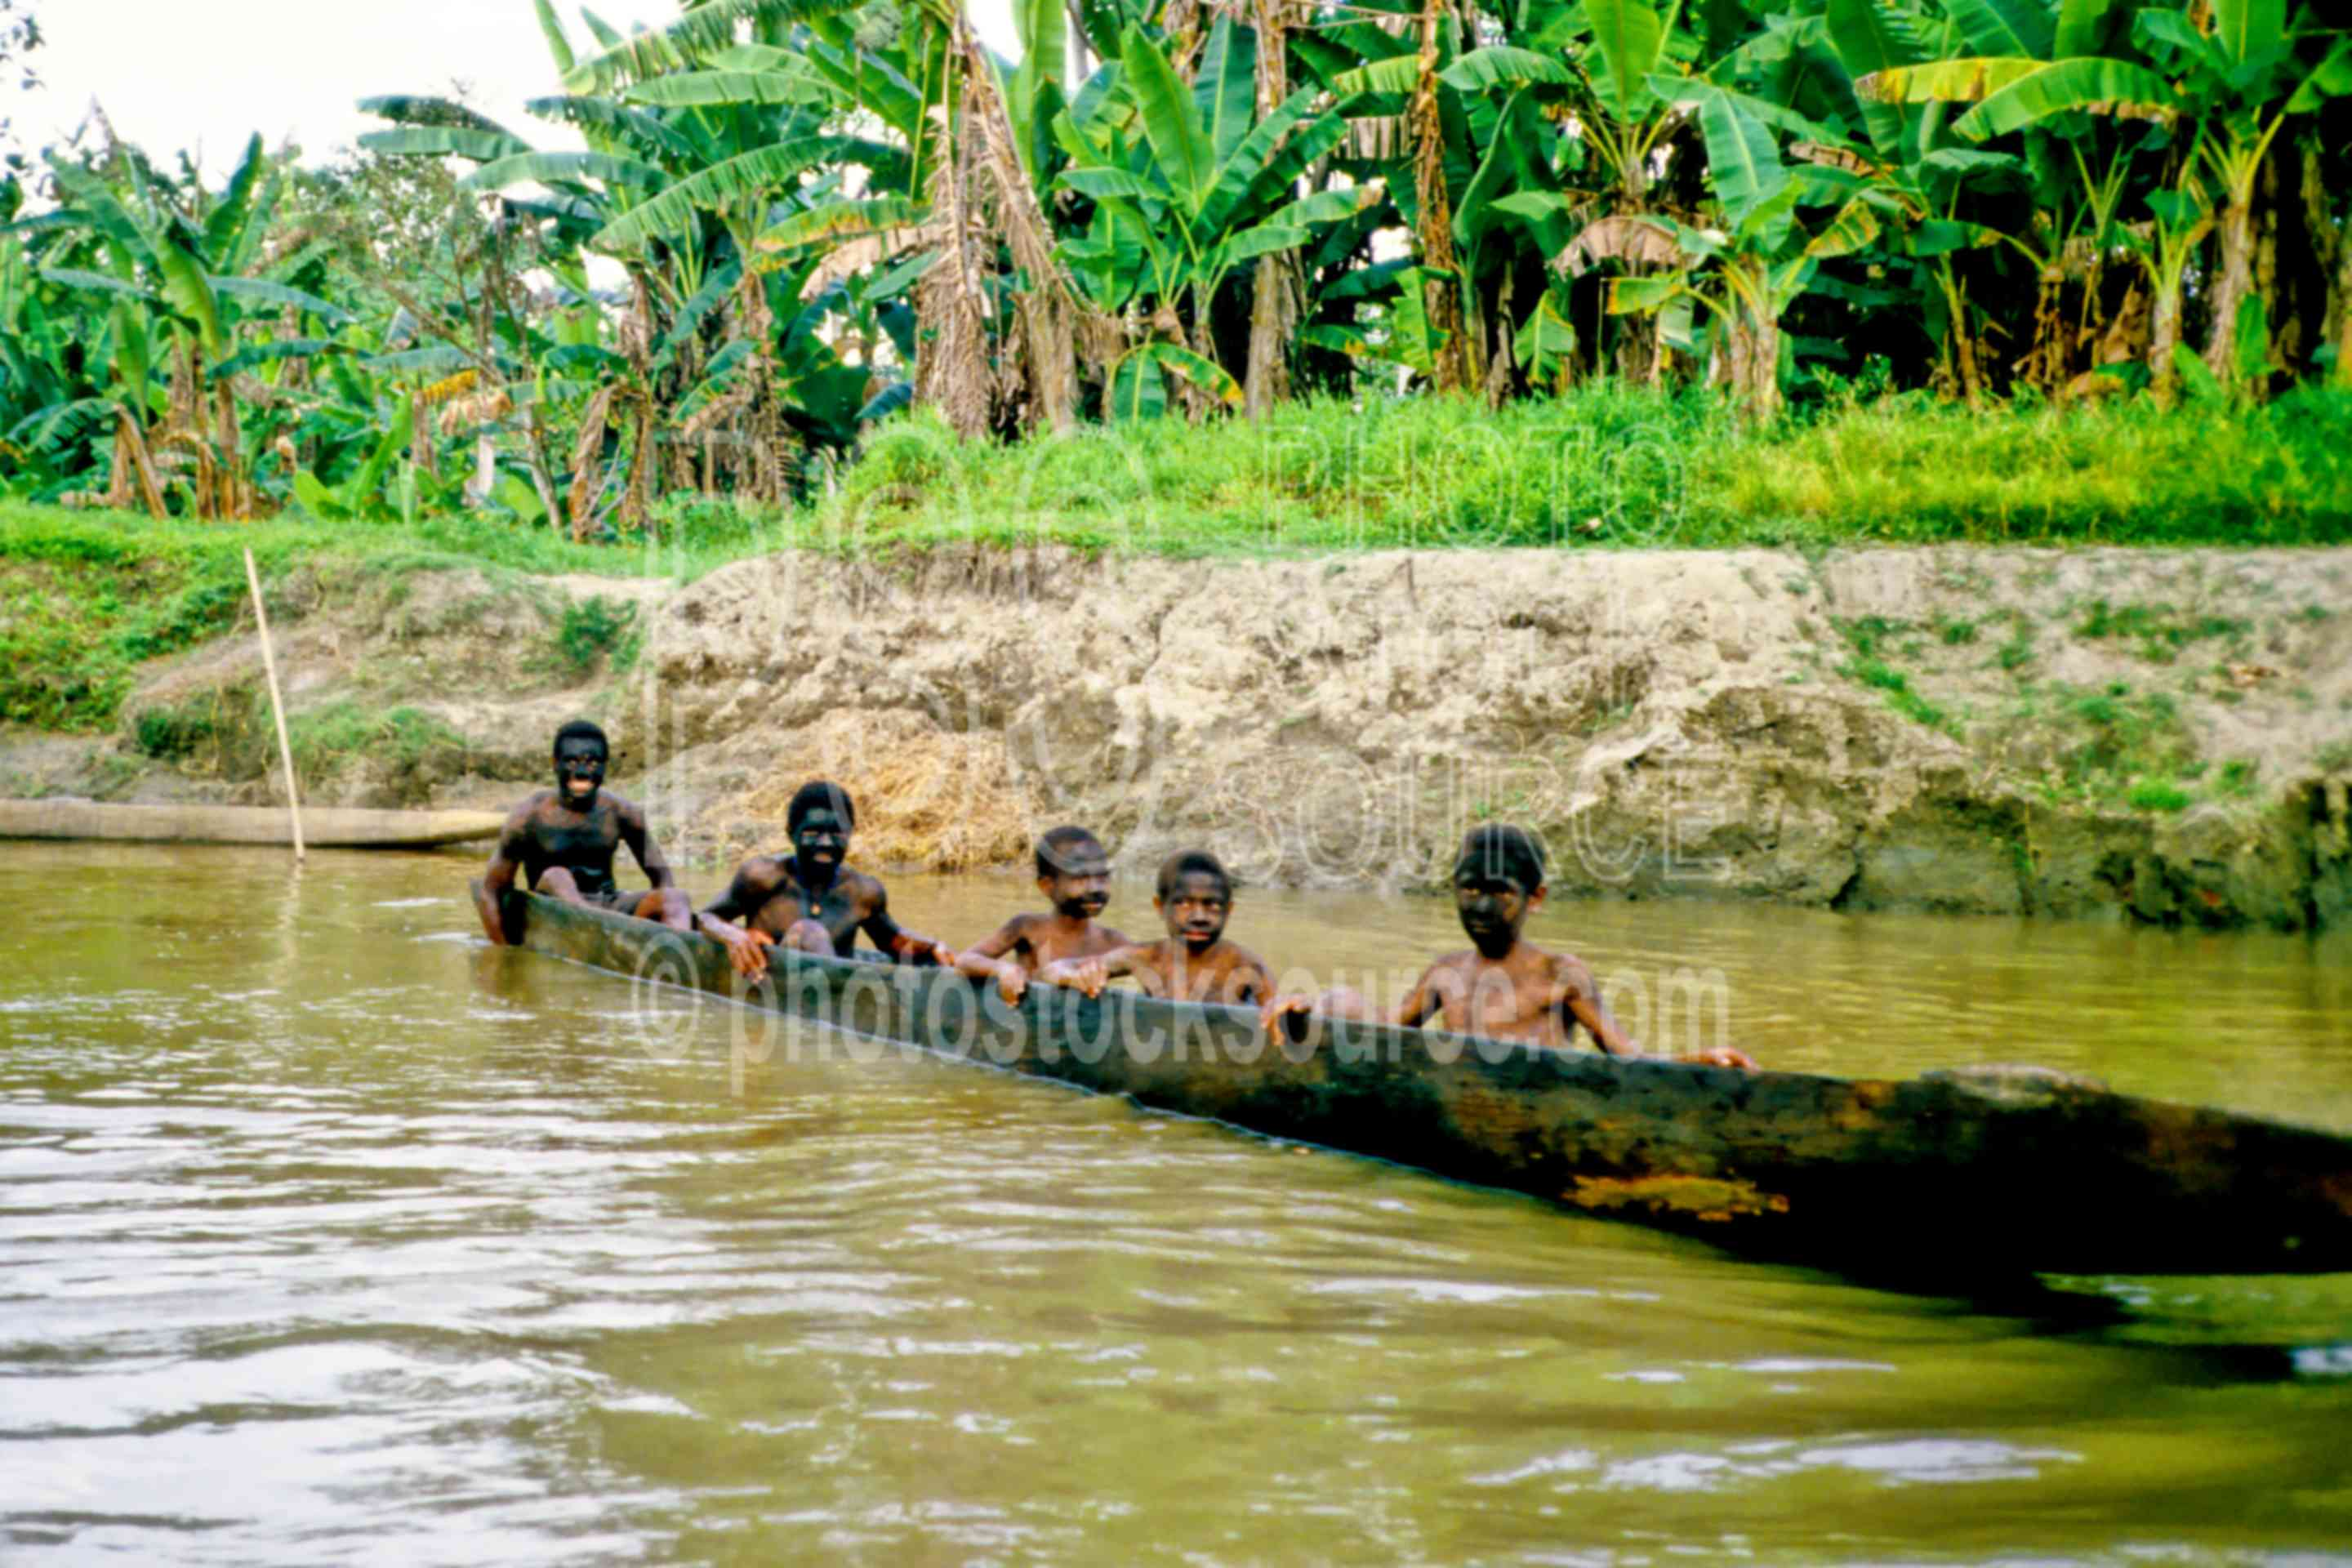 Boys in dugout canoe,boat,boys,canoe,ceremonial,river,water,lakes rivers,PNG Ceremonies,children